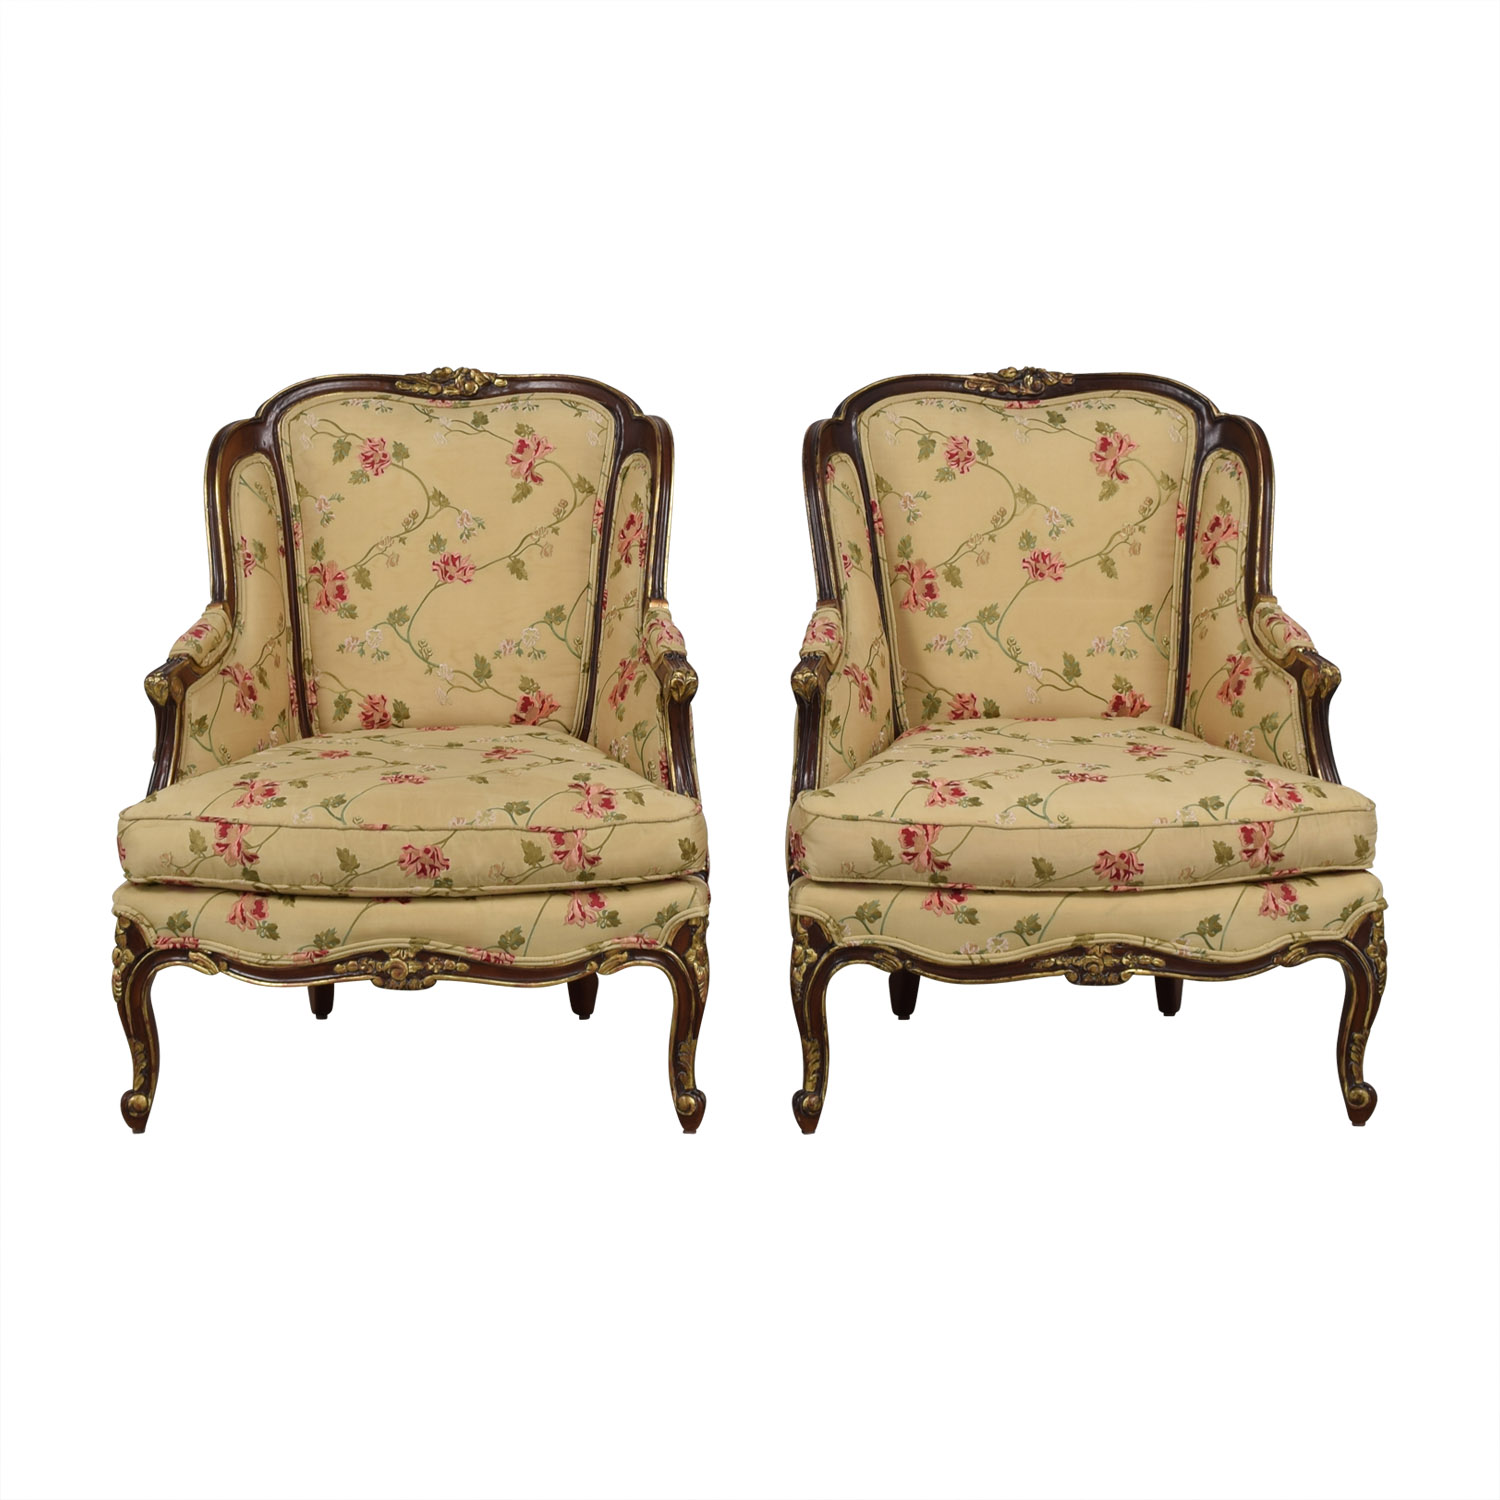 Century Furniture Louis Beige Floral Wing Accent Chairs sale